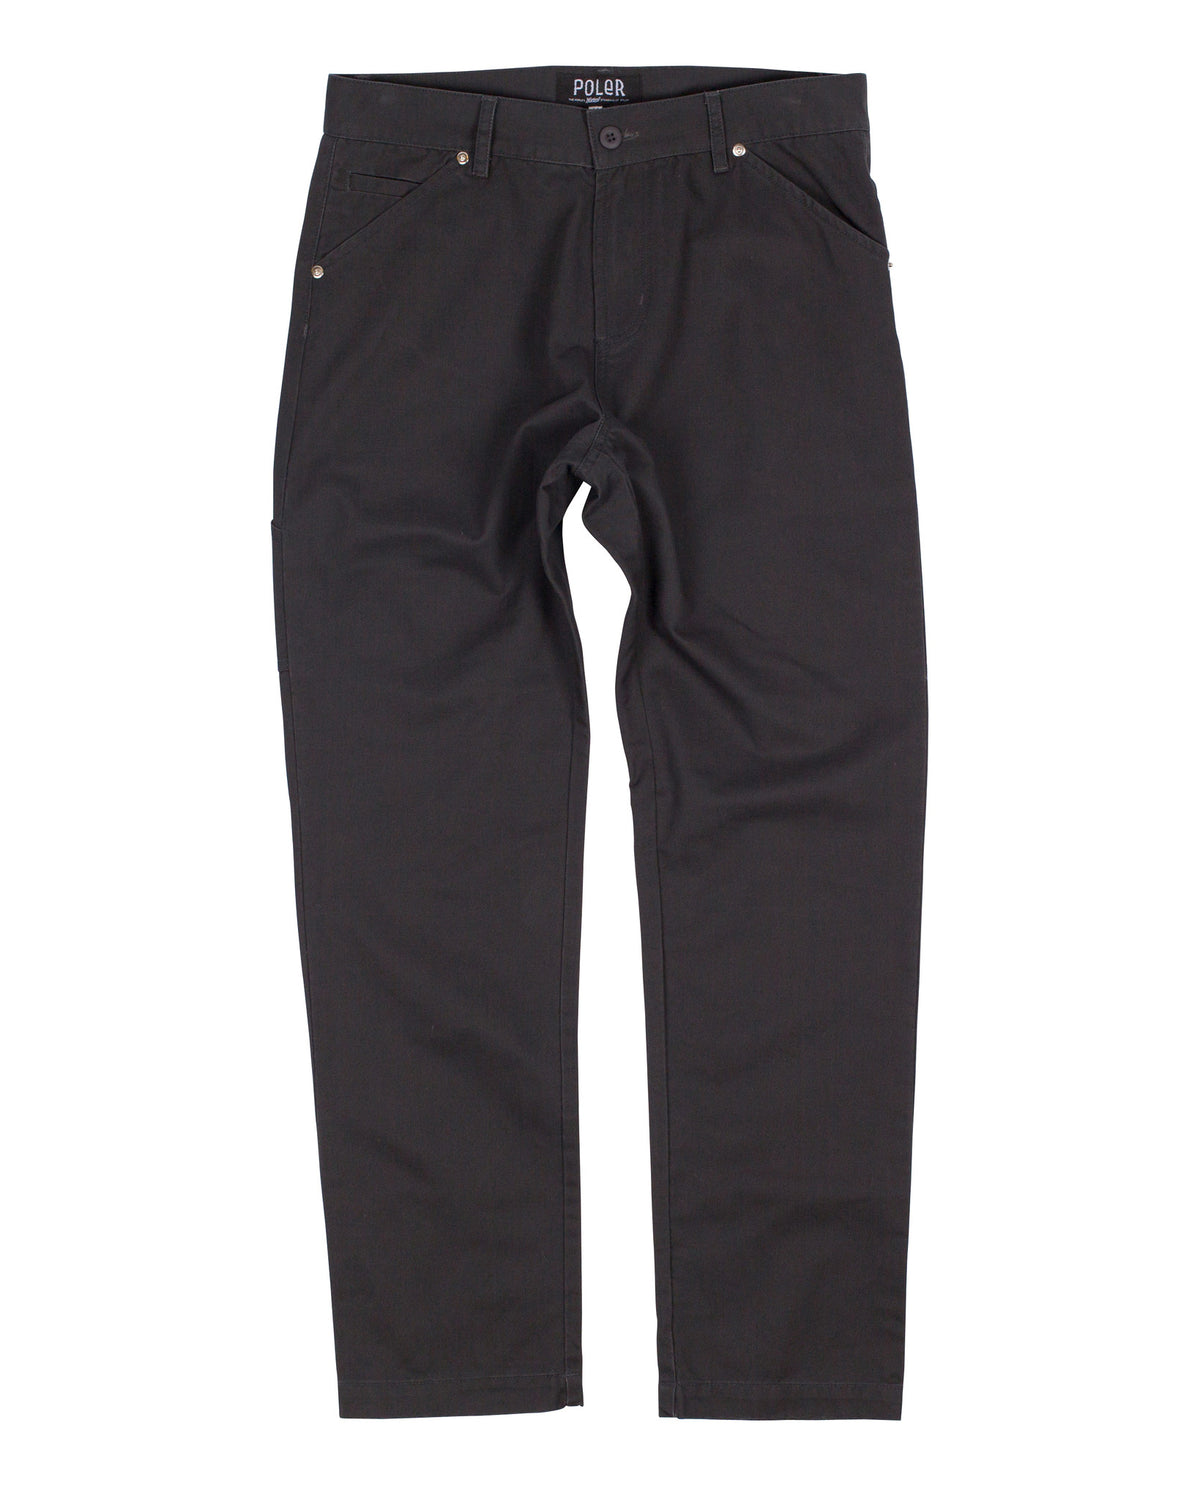 Mens Backyard Pants - Charcoal